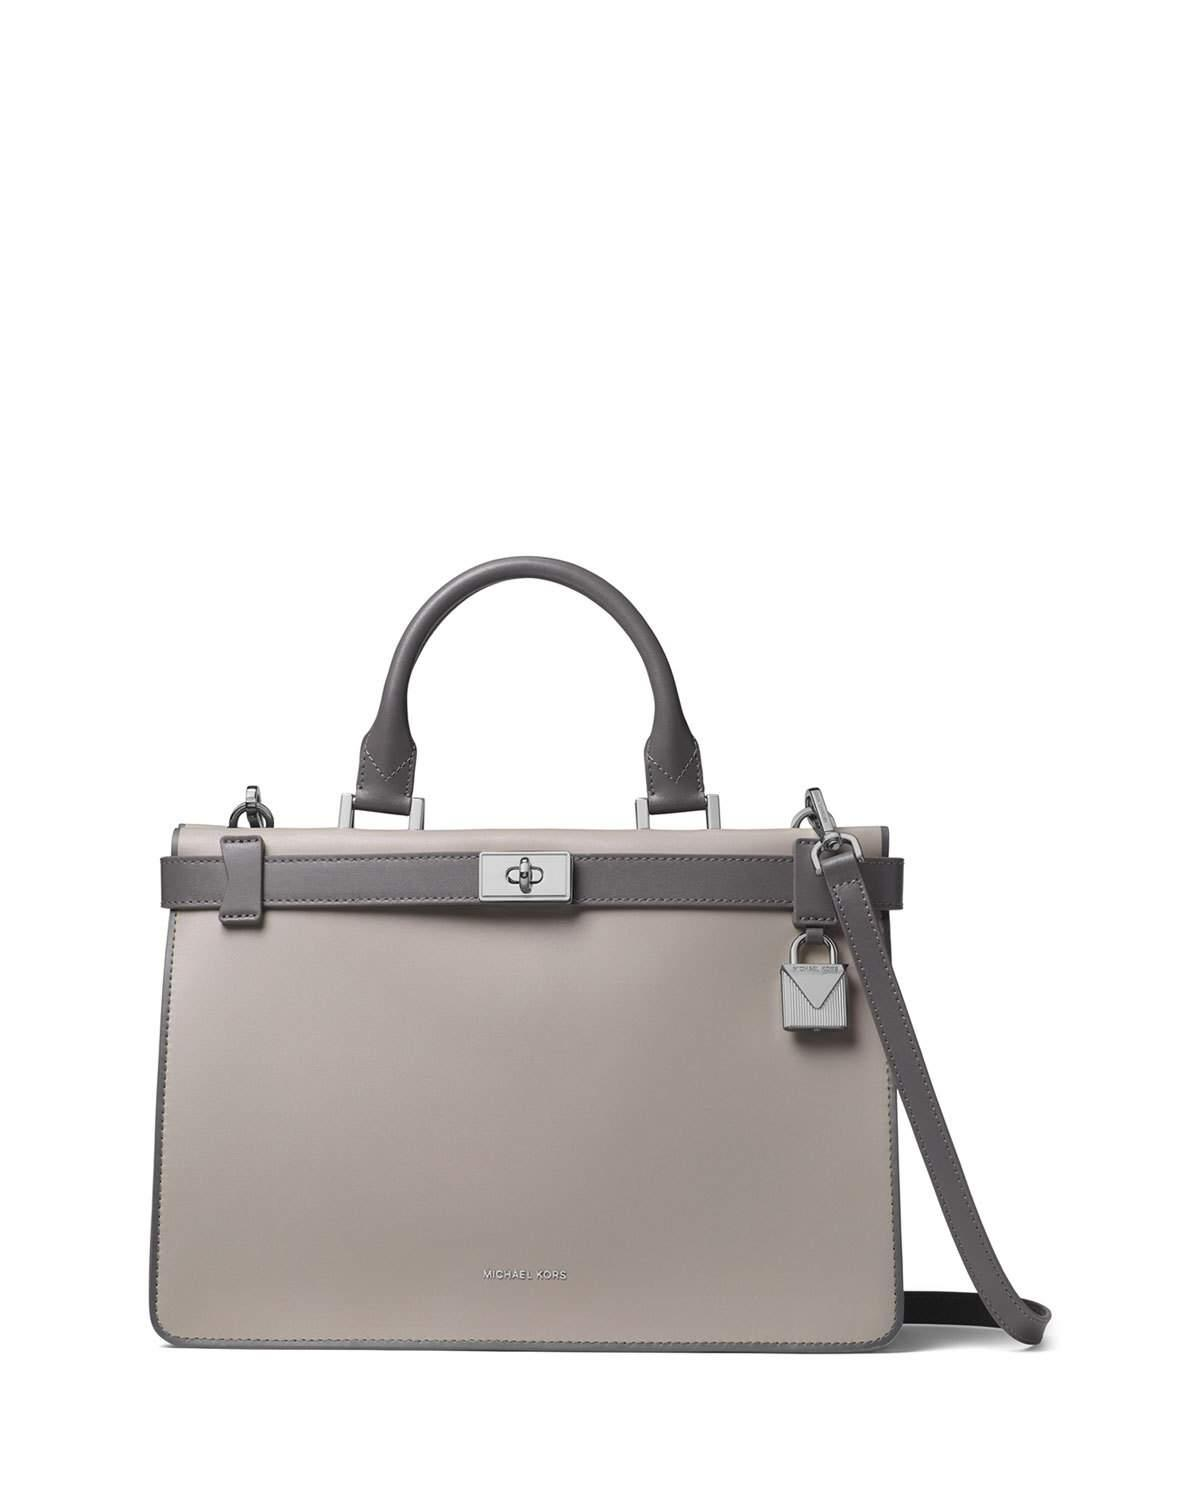 d409b48d35ad Michael Michael Kors Tatiana Medium Leather Satchel Bag - Silvertone  Hardware In Grey